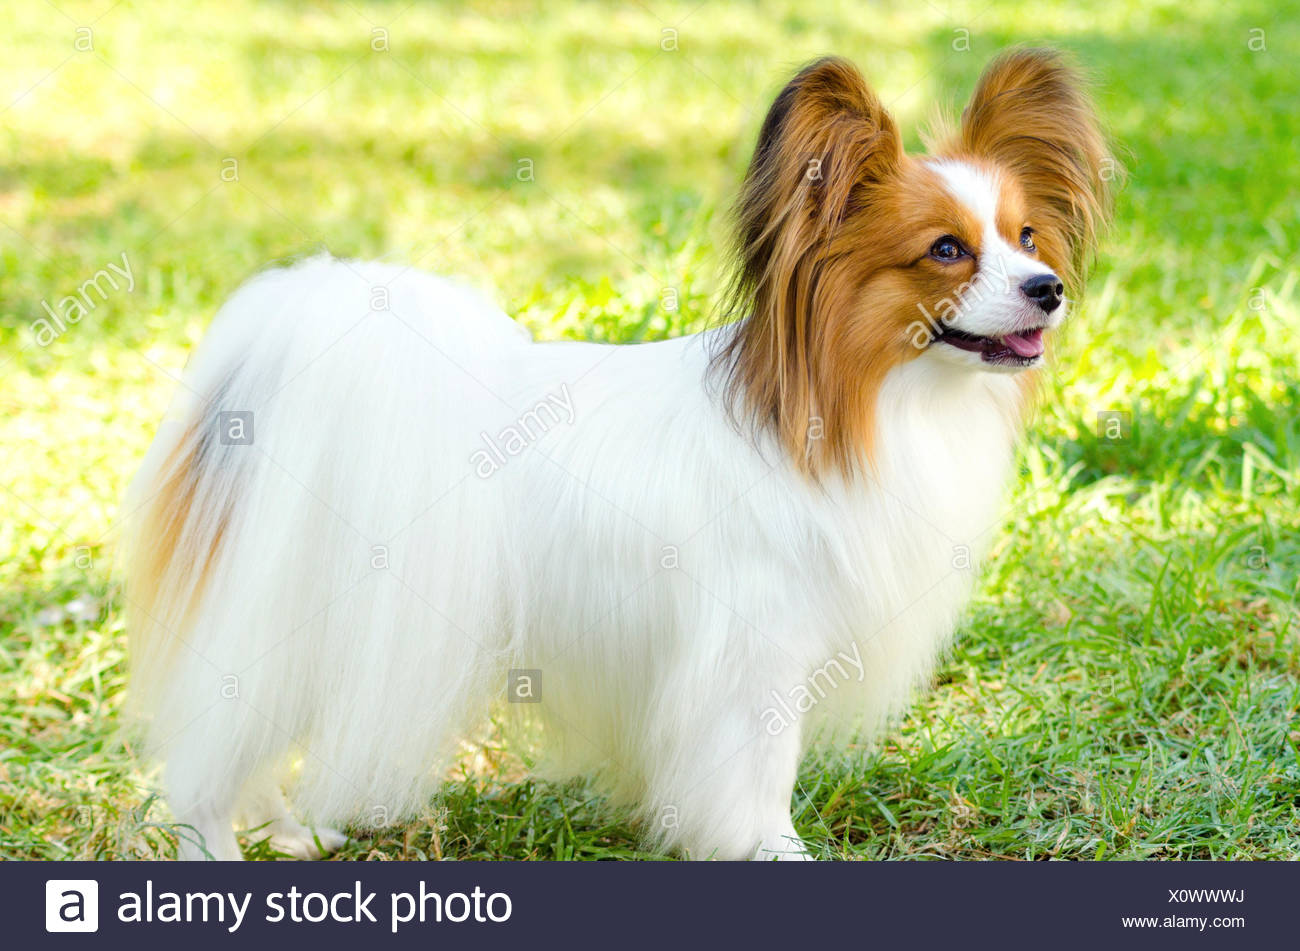 A Small White And Red Papillon Dog Aka Continental Toy Spaniel